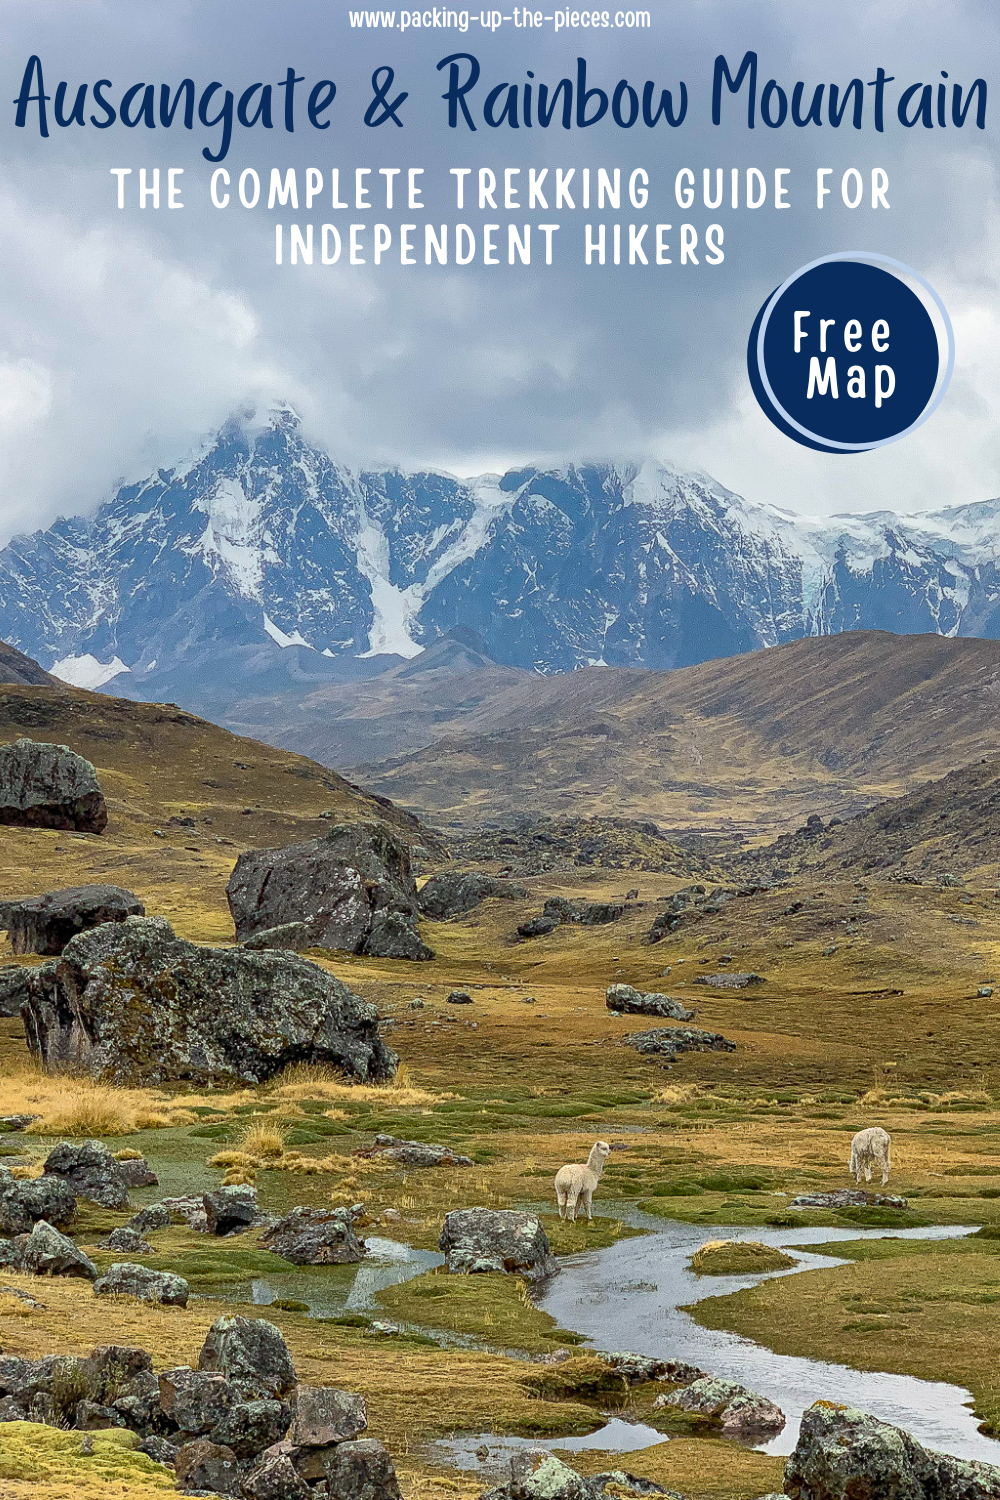 The Complete 6 Day Trekking Guide for Ausangate &